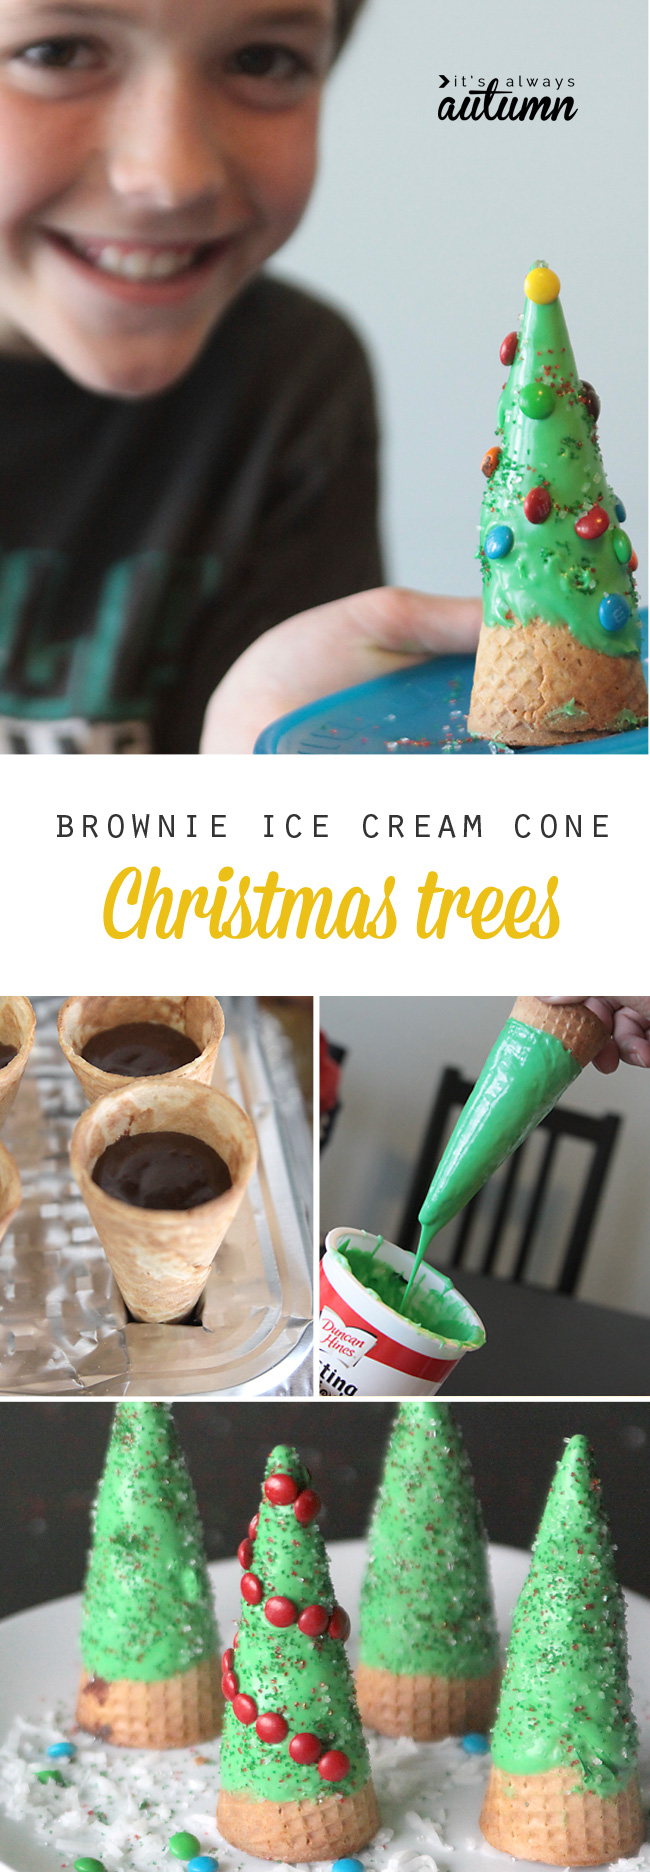 Brownies are baked into ice cream cones, which are decorated like Christmas trees in this fun kids' food craft.